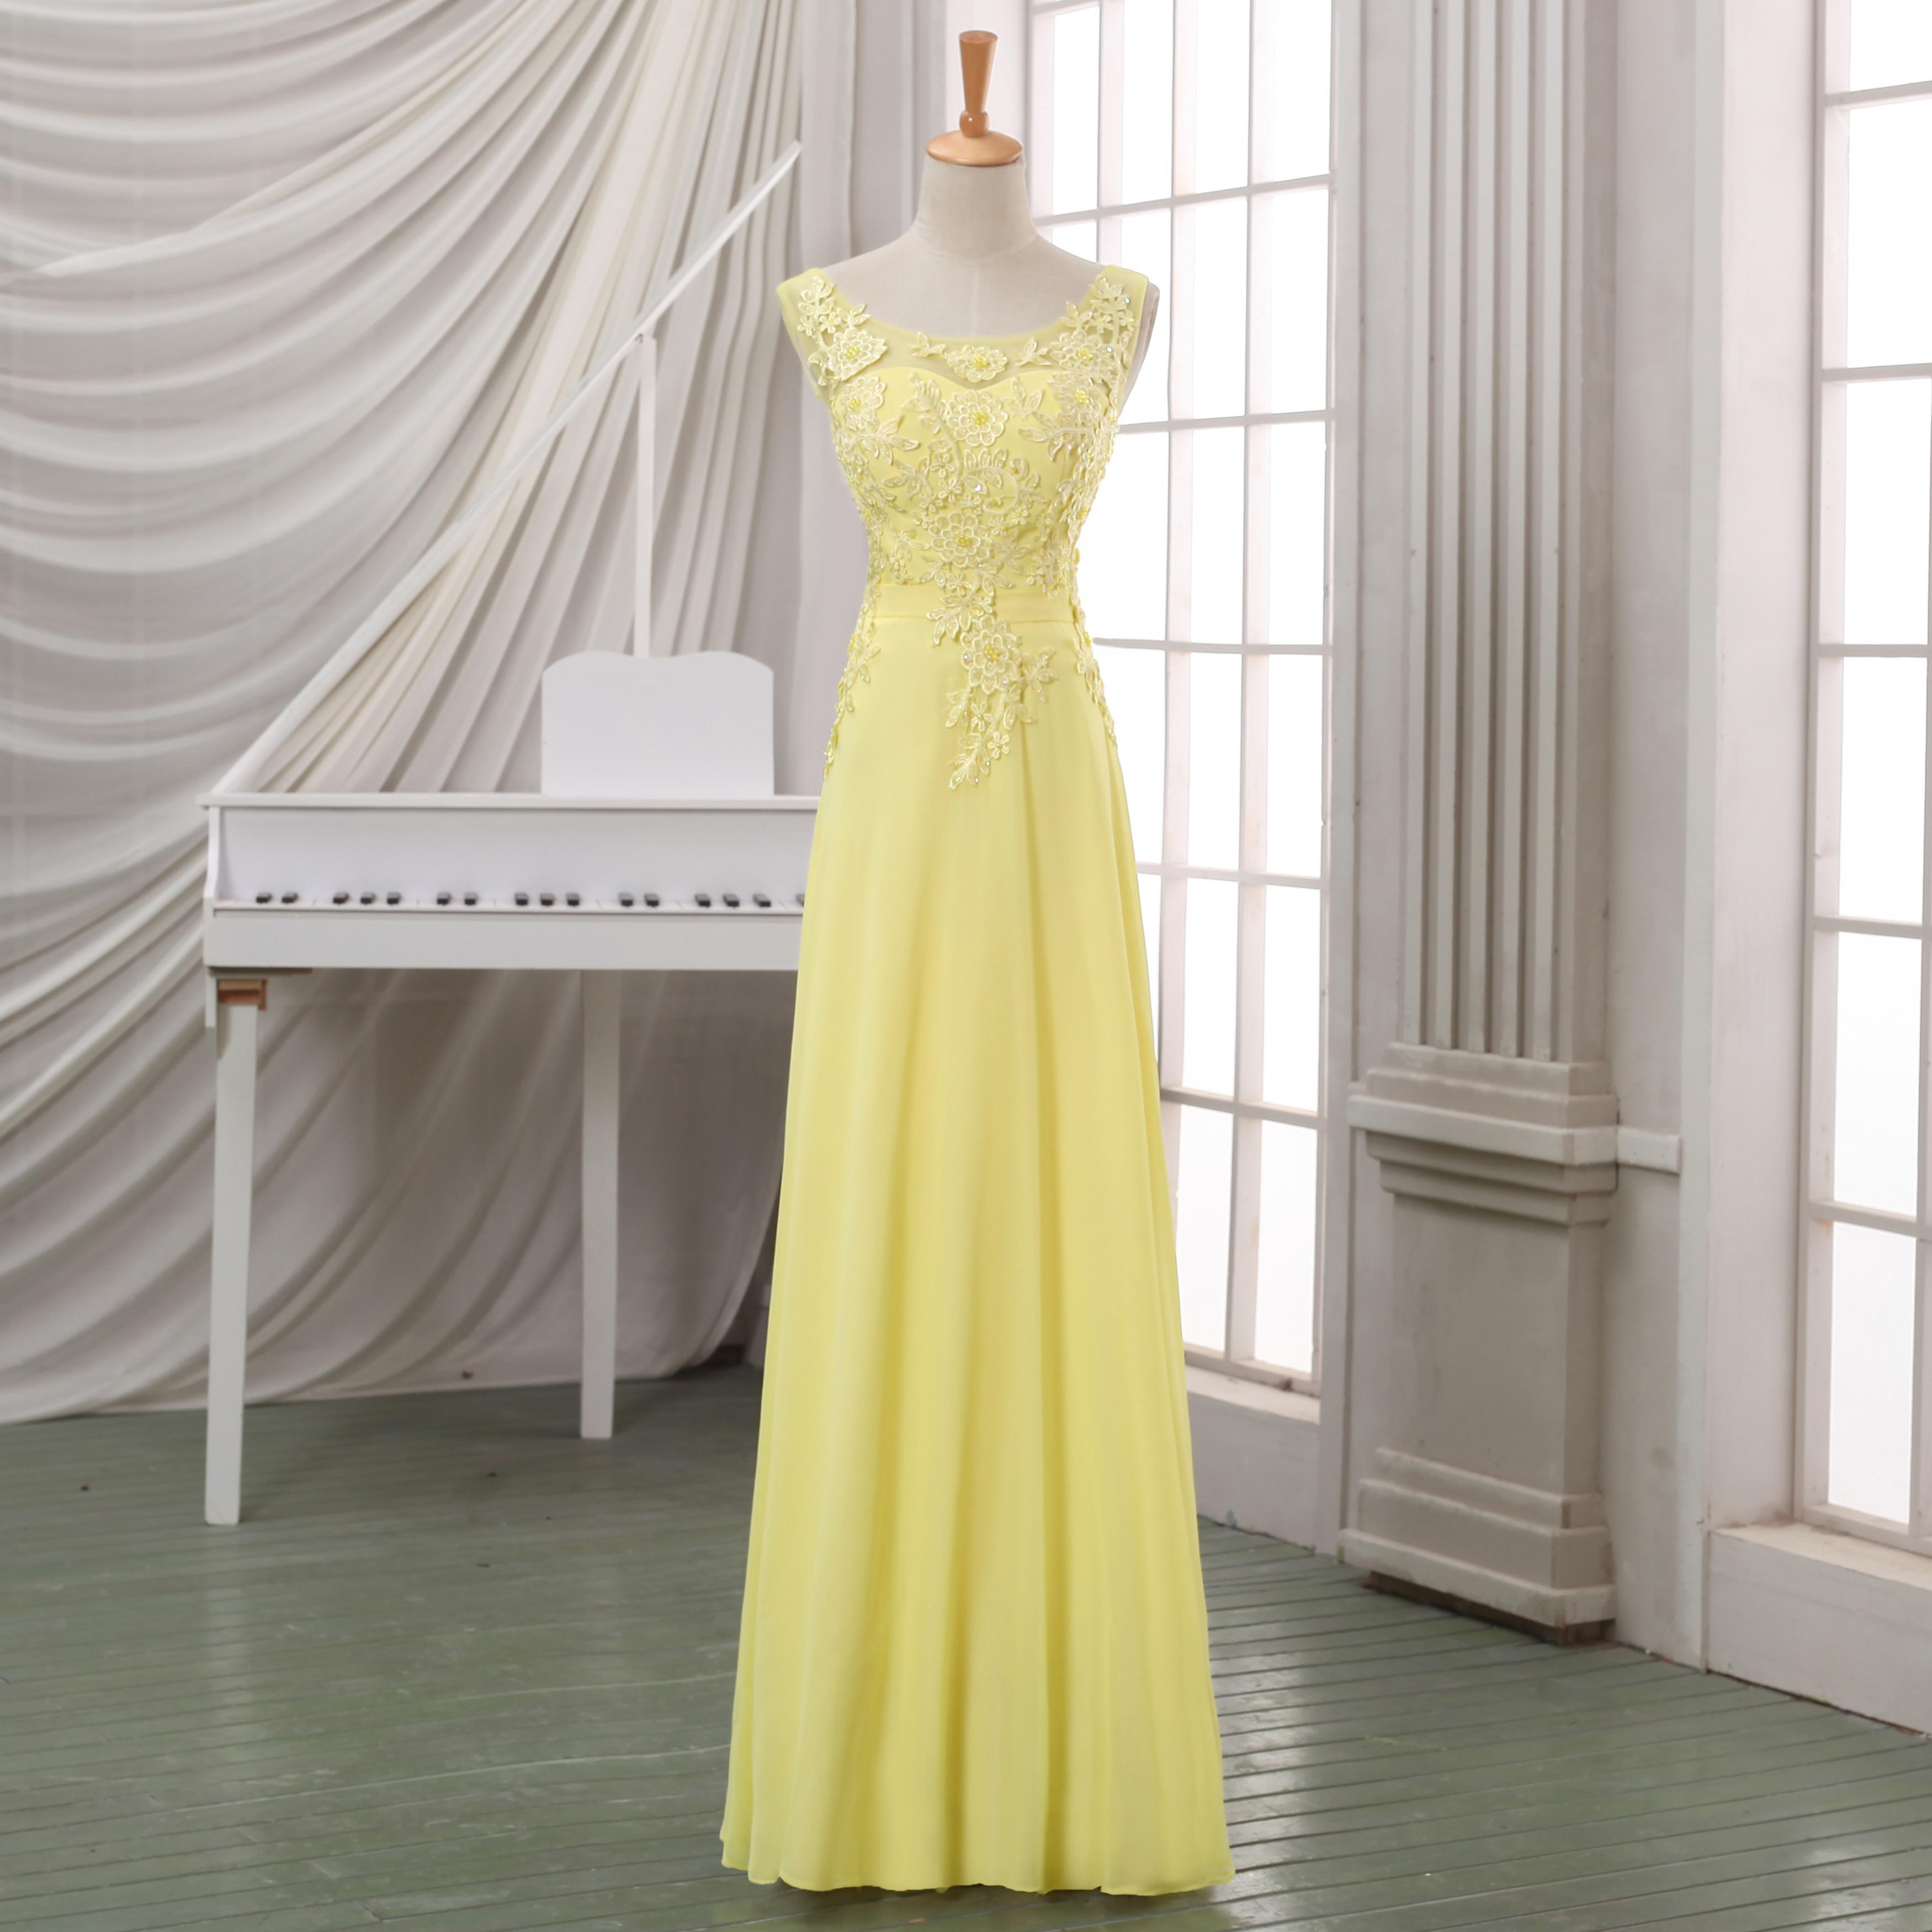 202150873d7 2016 New Arrival Yellow Lace Evening Dress